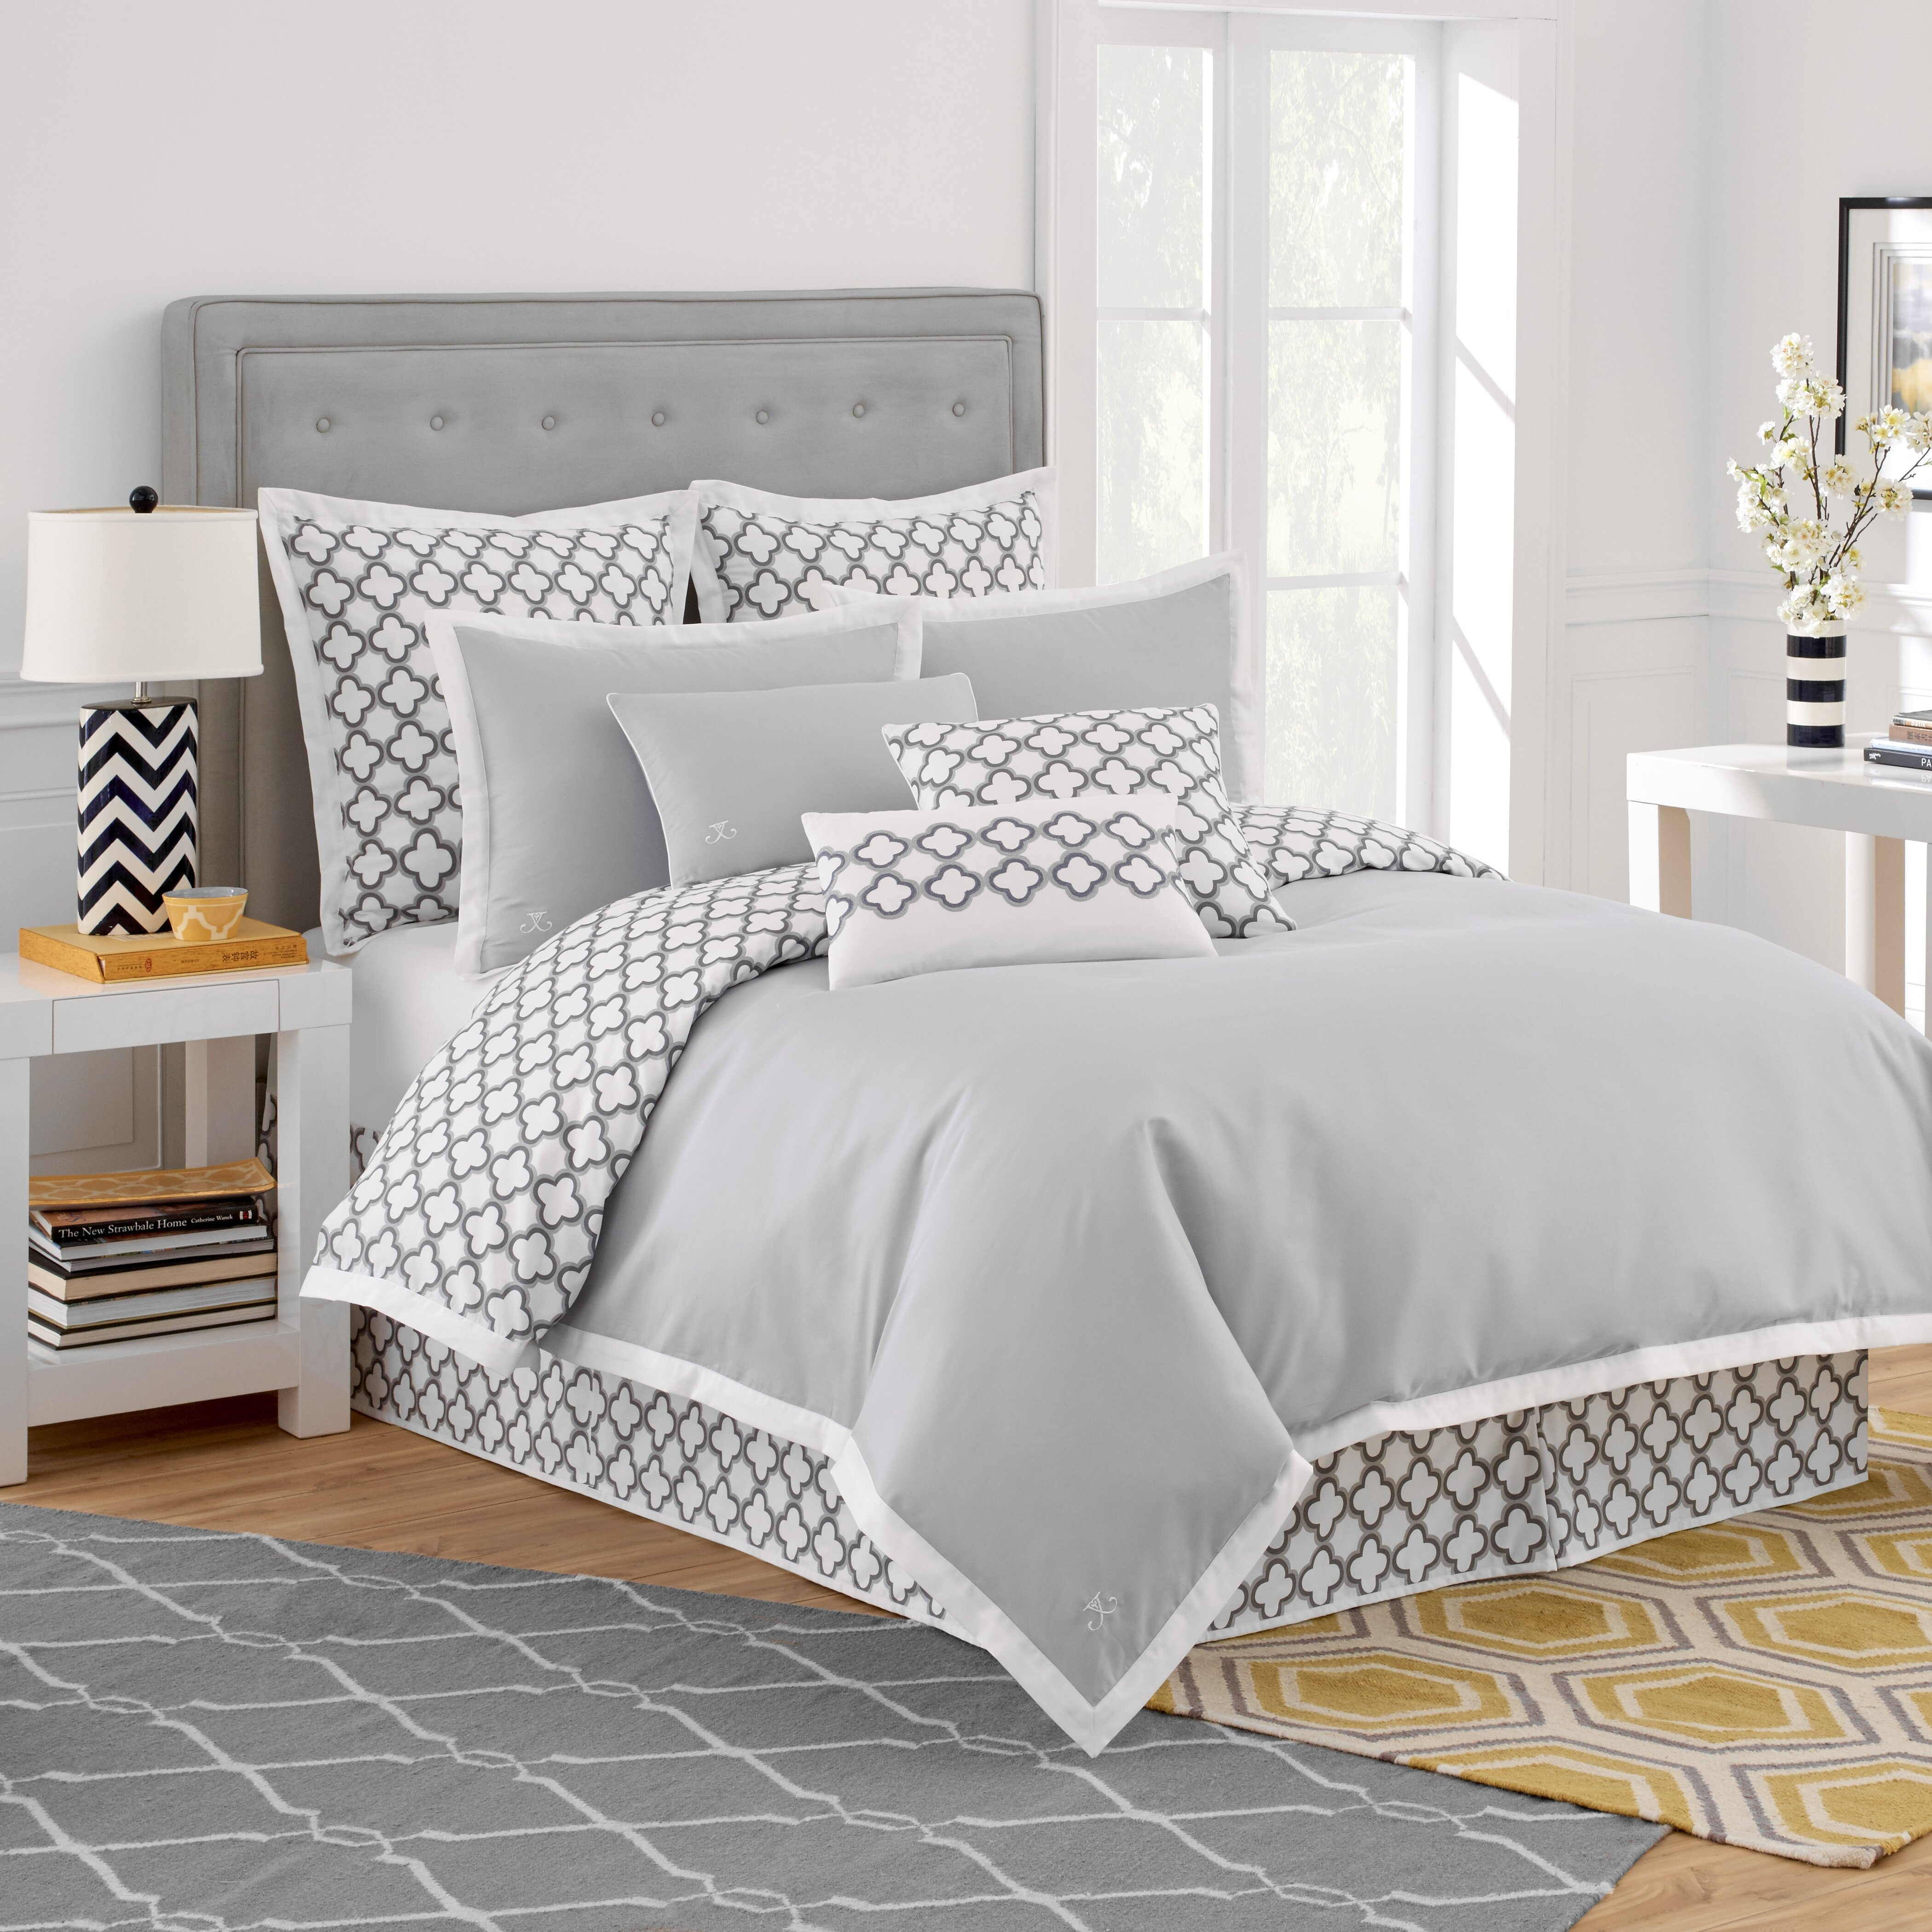 gray home set with kitchen striped very retro piece subtle duvet tahari bedding cover amazon dp com pattern king